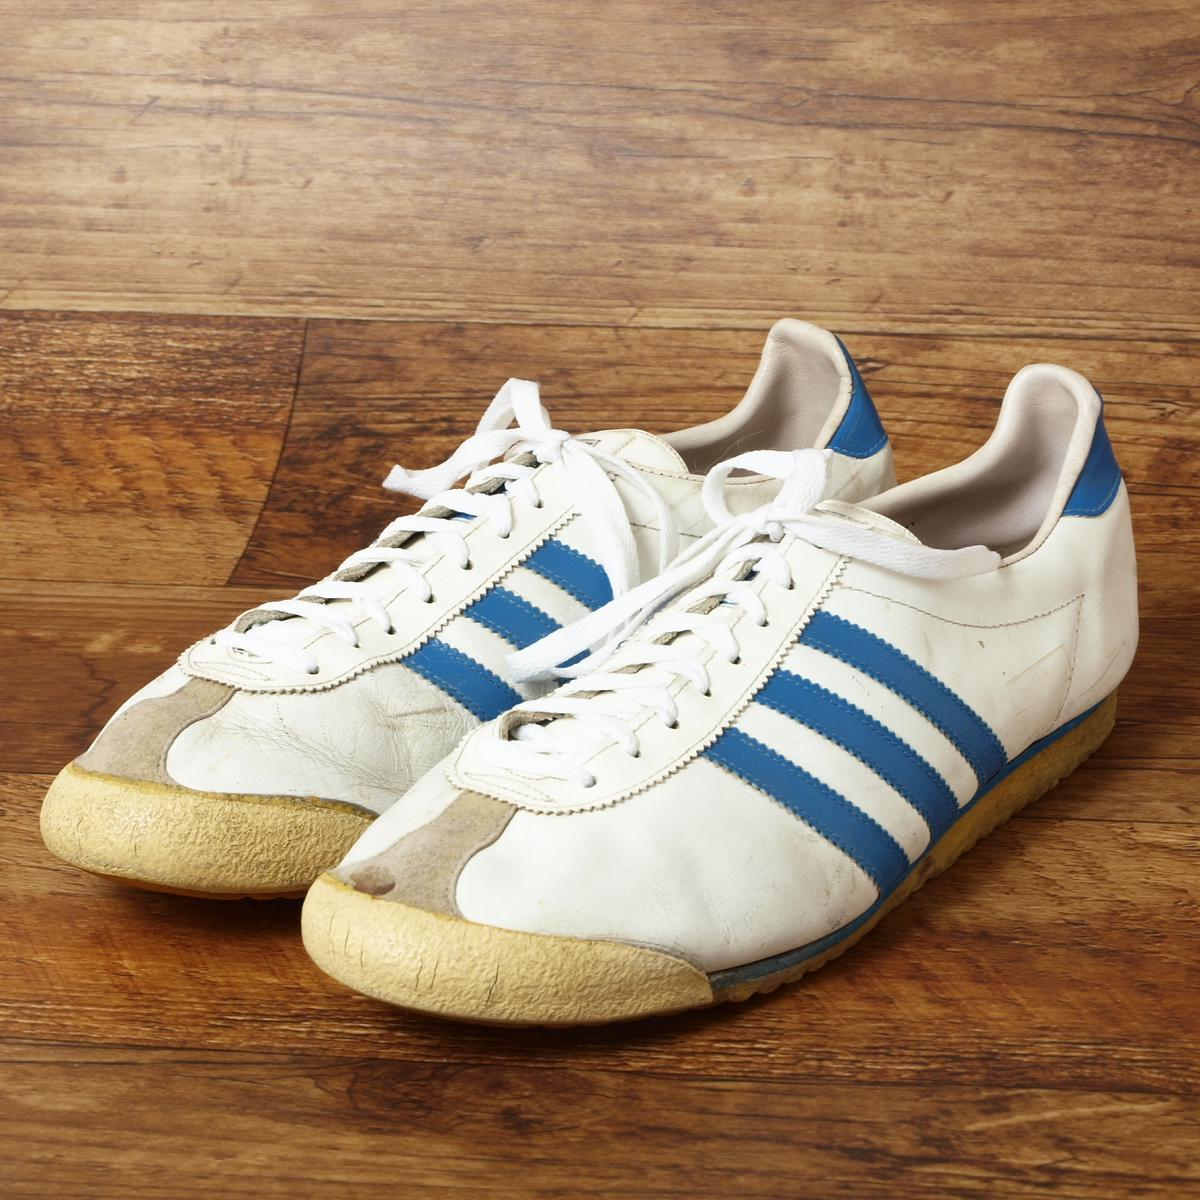 adidas 70s shoes